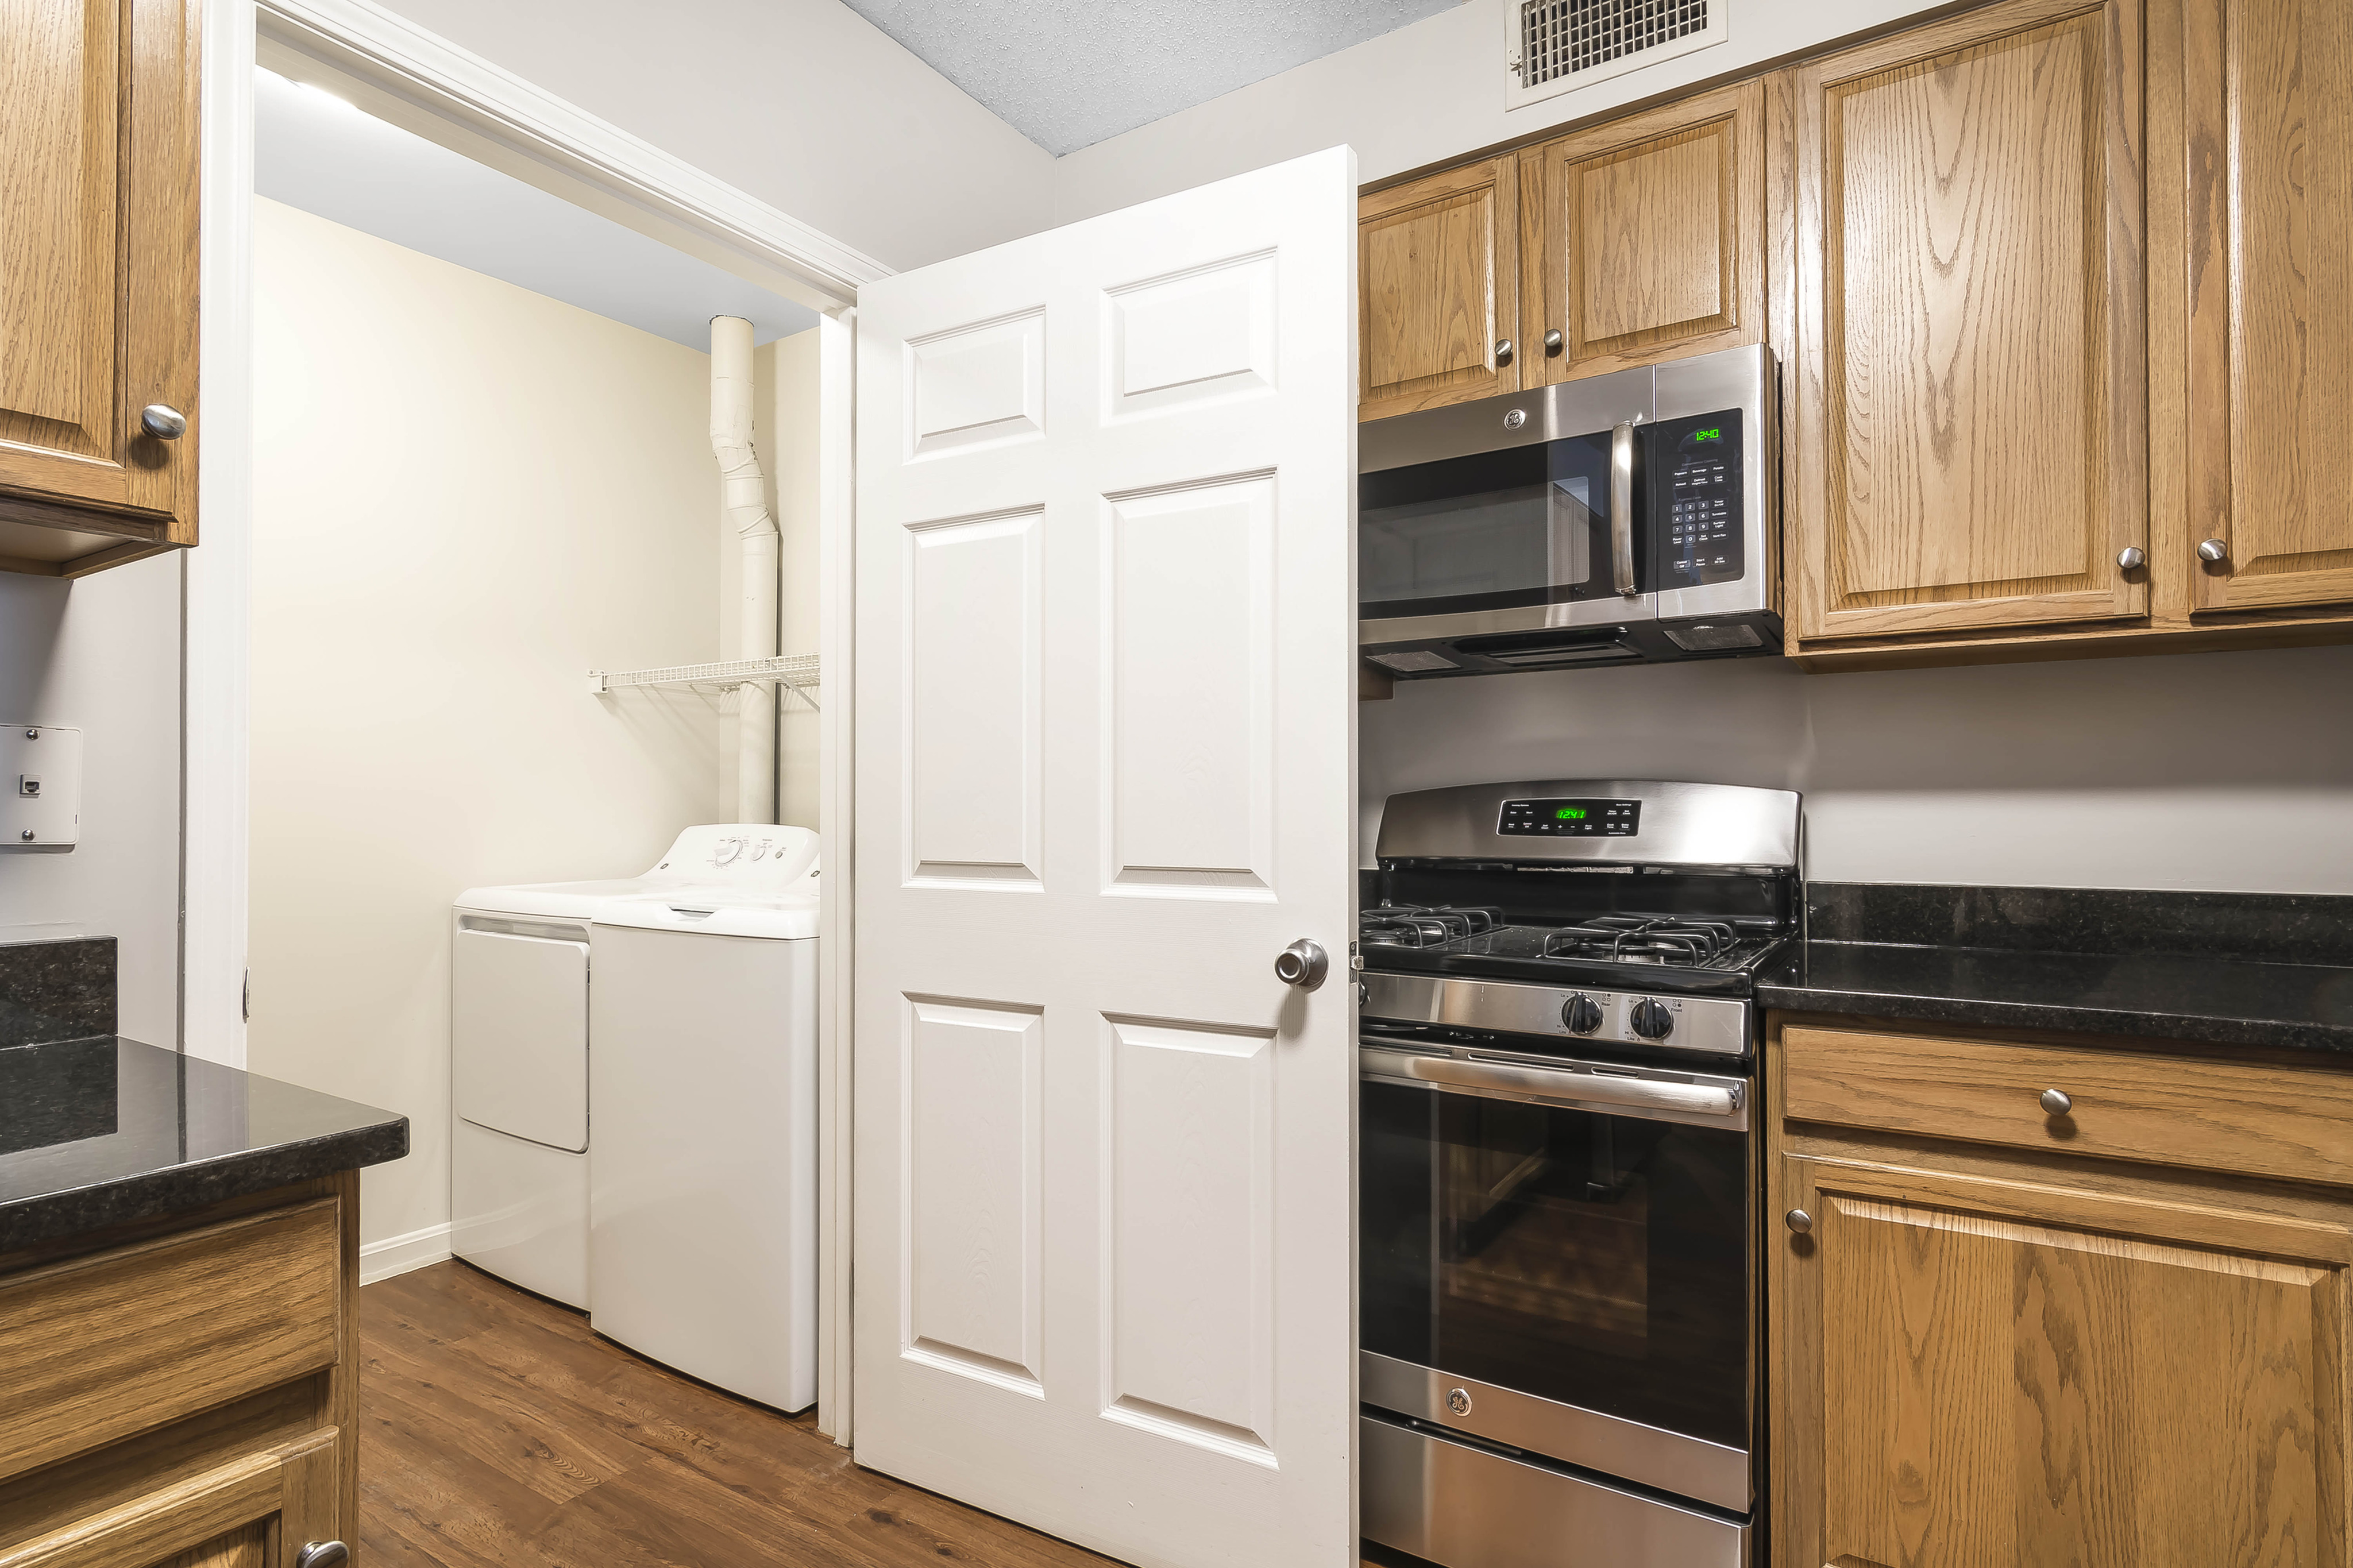 Image of Washer/Dryer in-unit for Vinnin Square Apartment Homes